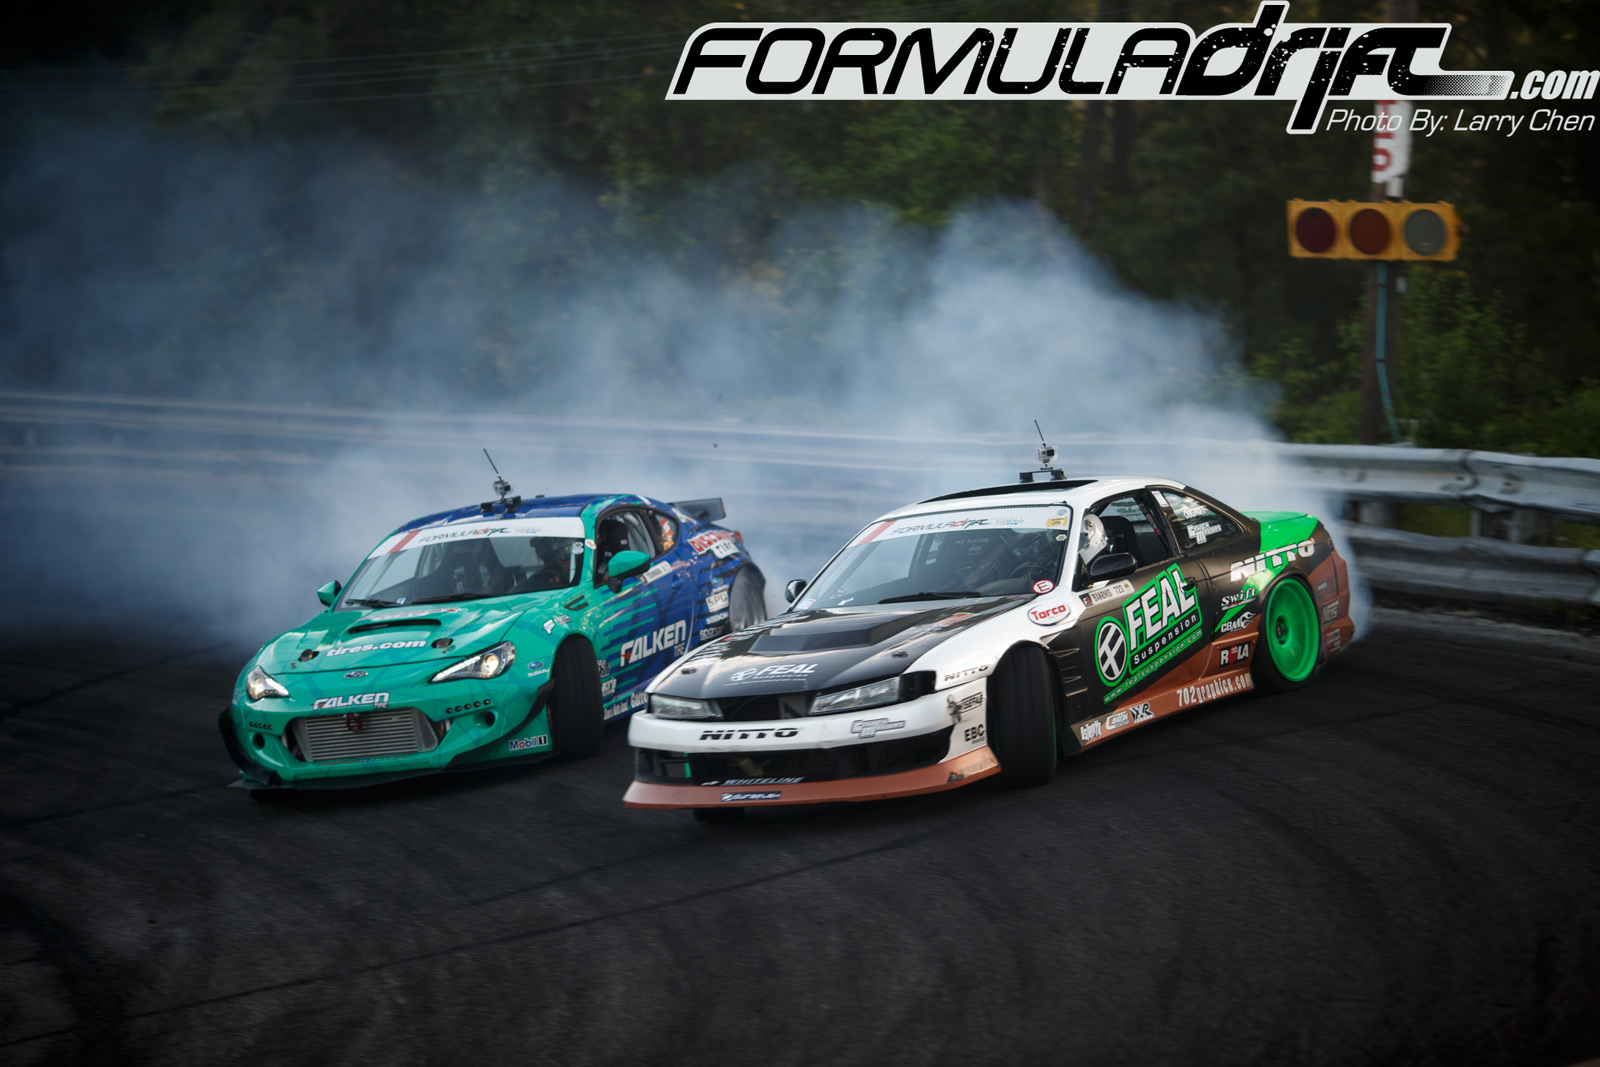 PASMAG Formula Drift The Gauntlet Wall Speedway New Jersey FDNJ 2014 Larry Chen 0916